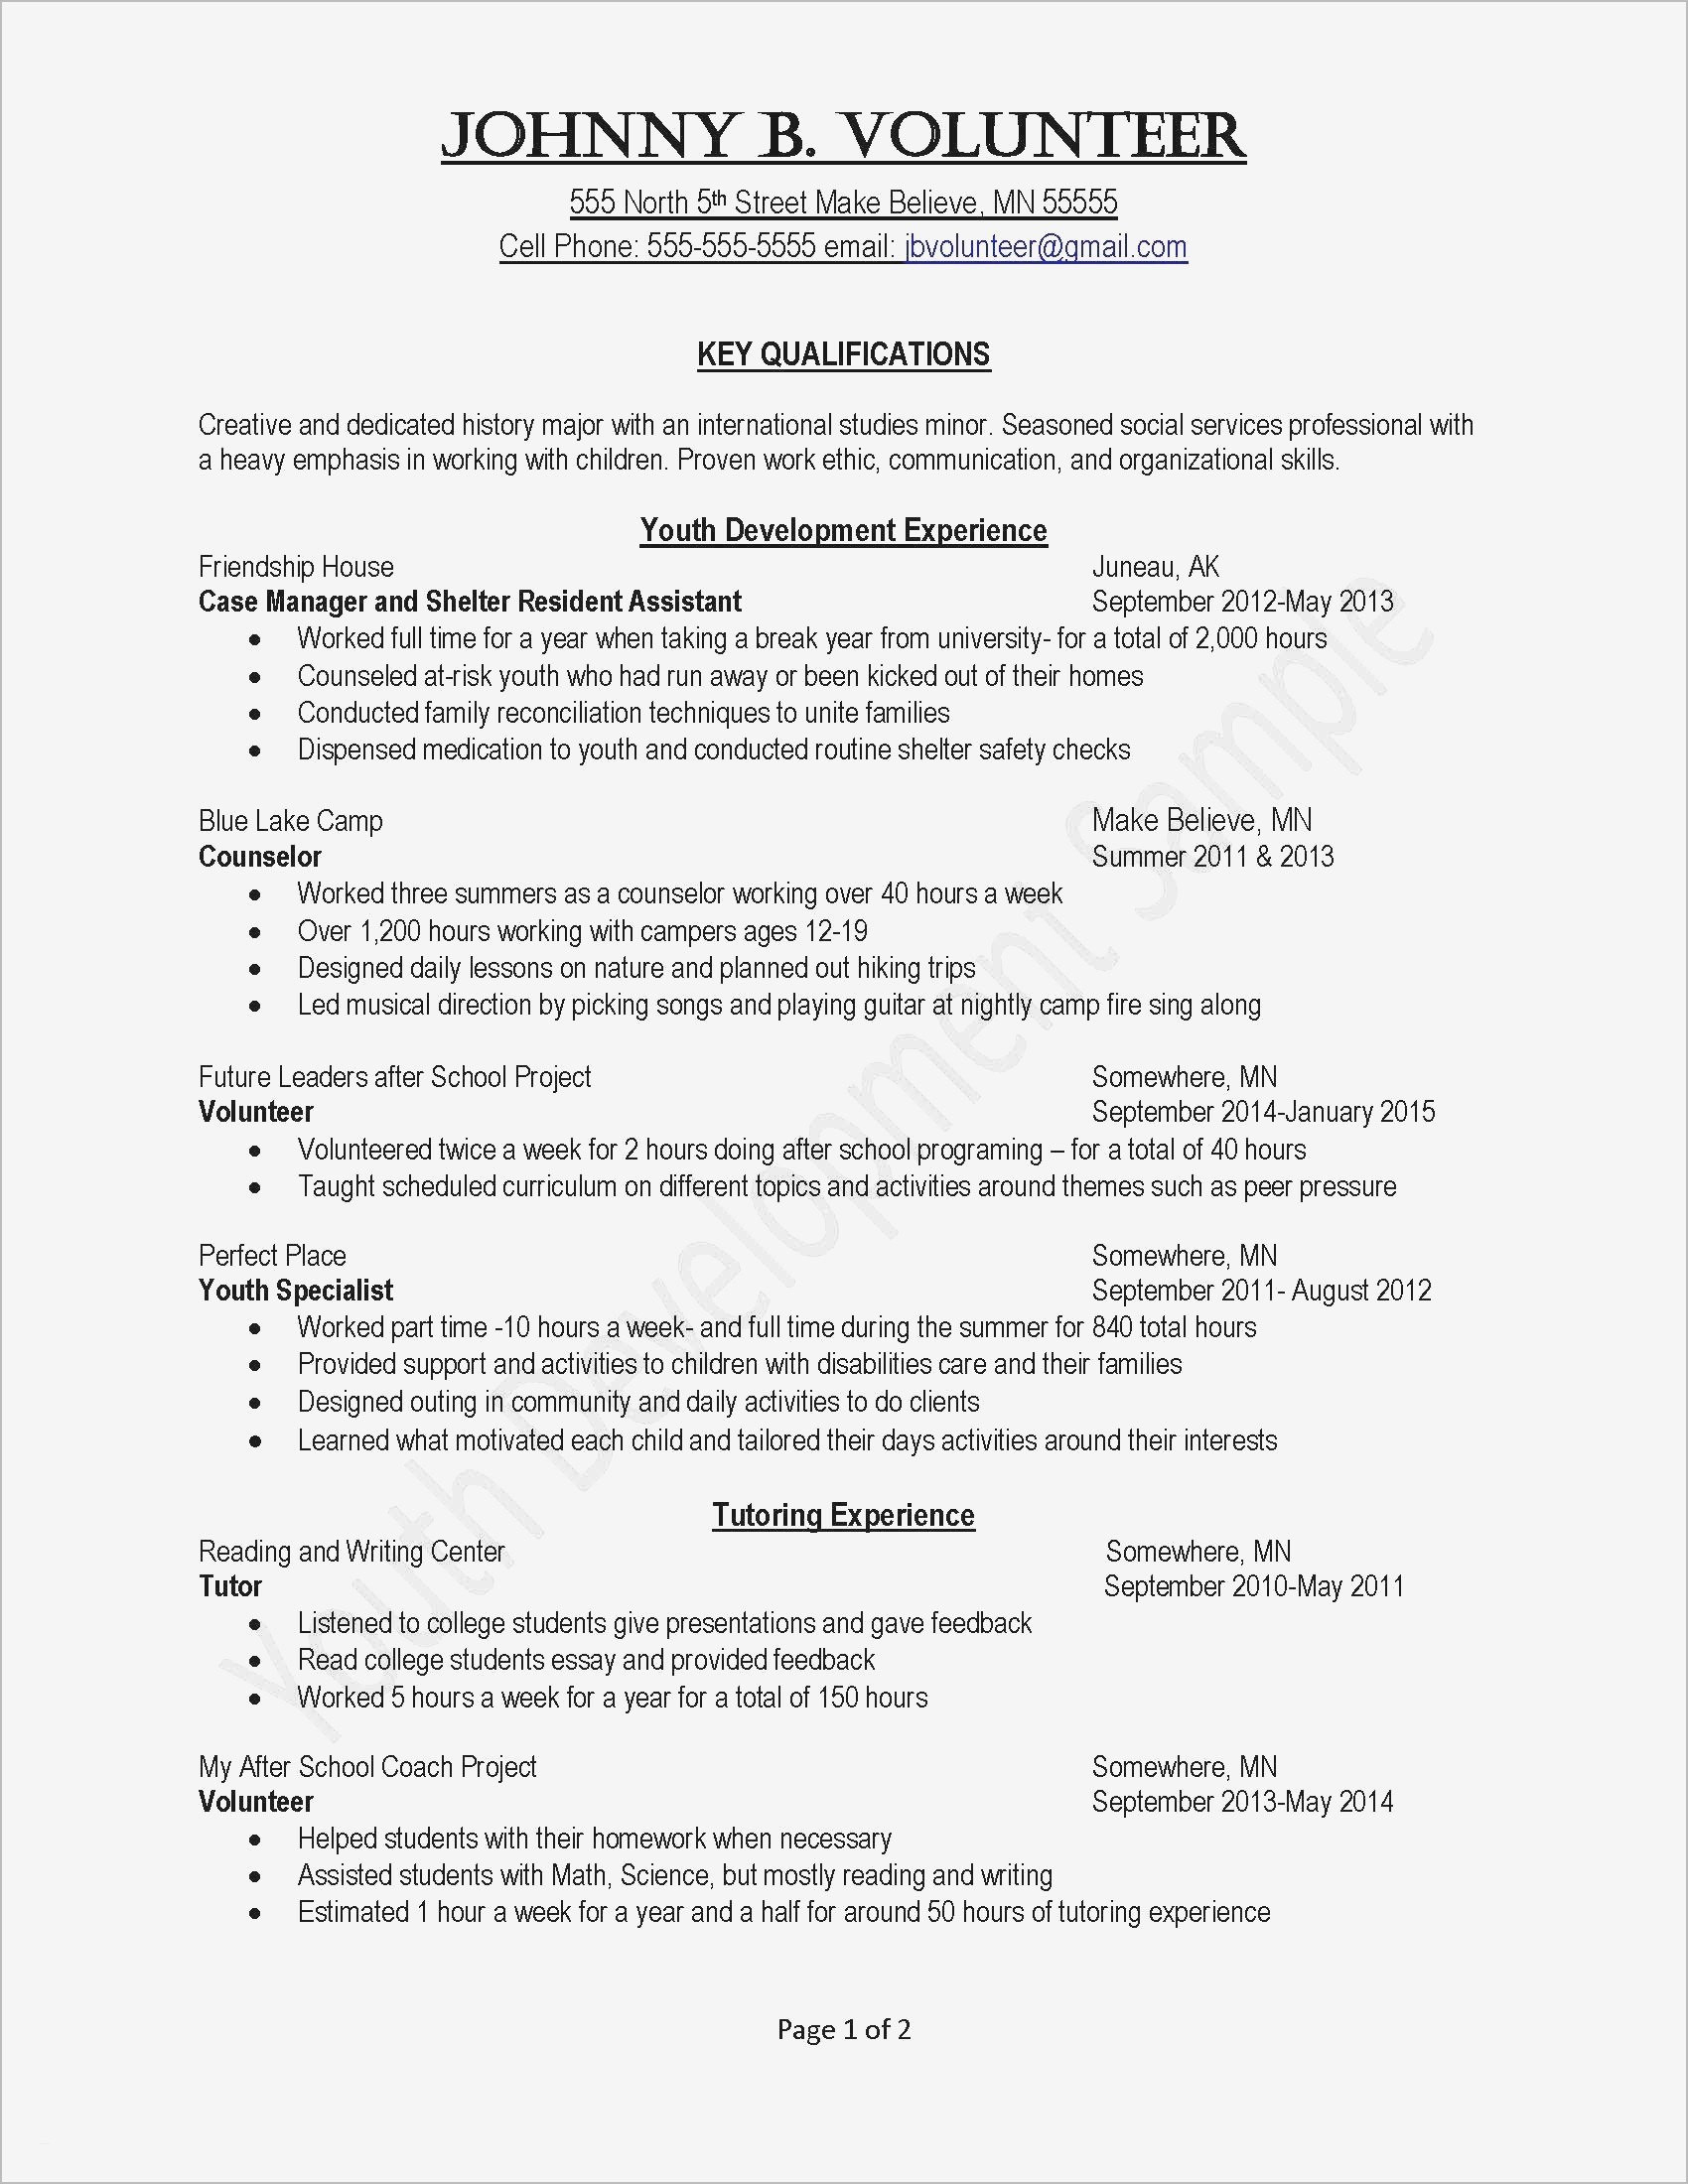 Simple Cover Letter Template Free - Free Templates for Resumes and Cover Letters Best Job Fer Letter